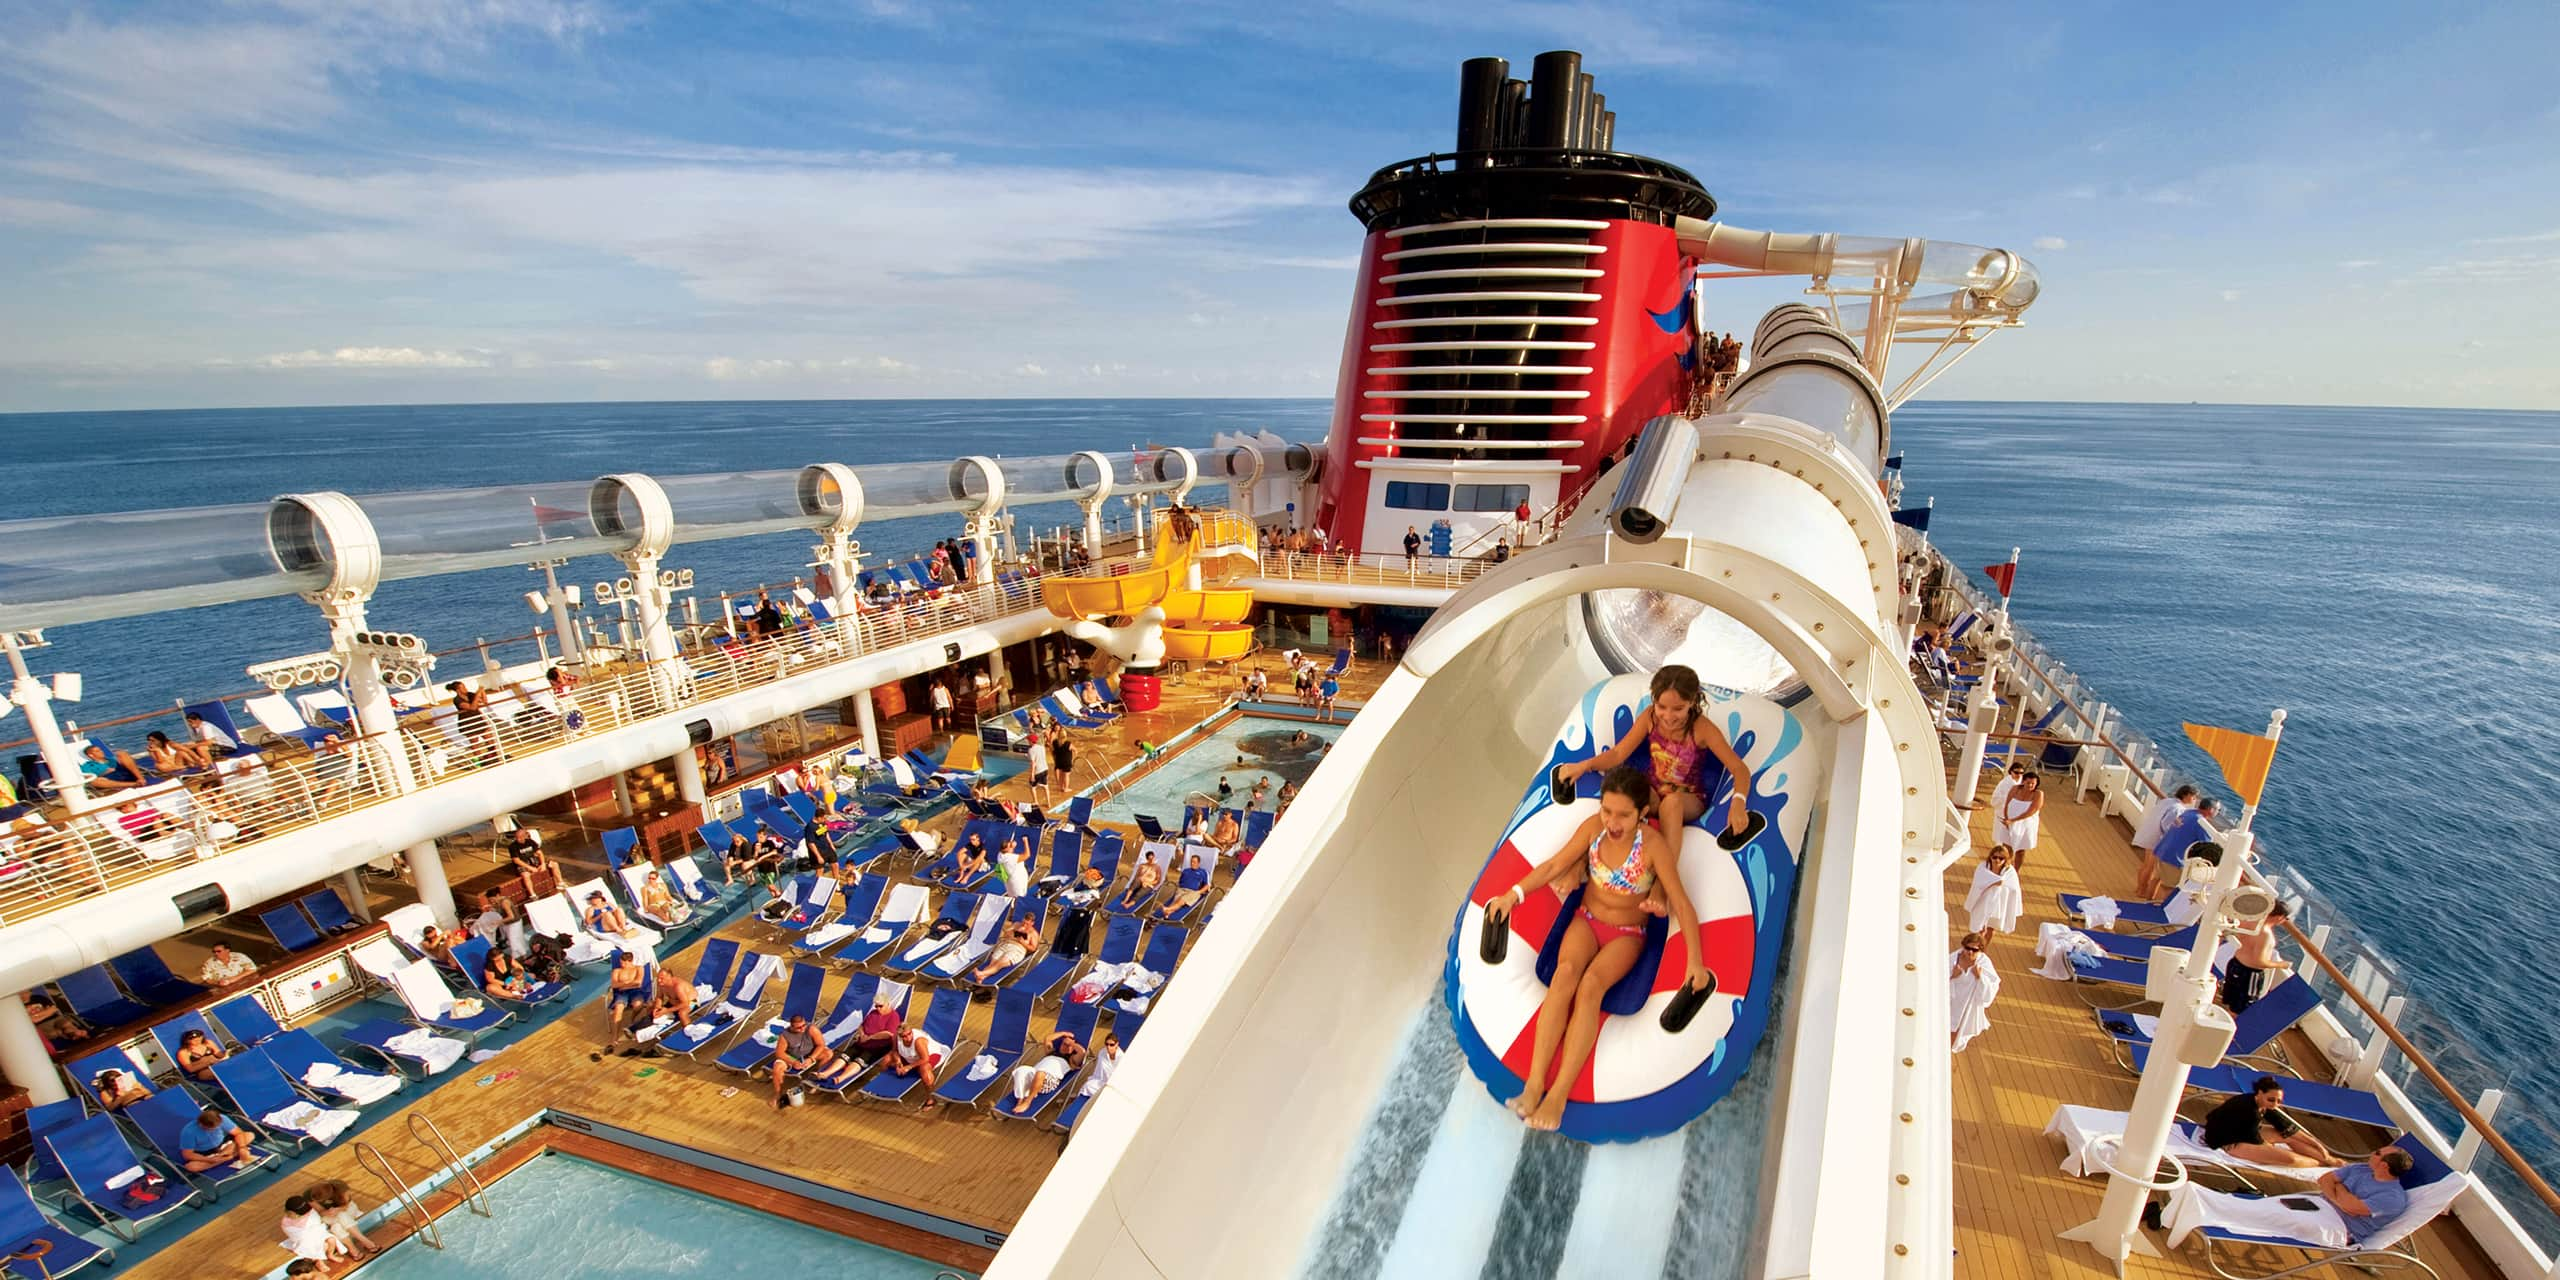 Two girls on inflatable rafts propelling through the AquaDuck waterslide above a pool area on a Disney Cruise Line ship at sea